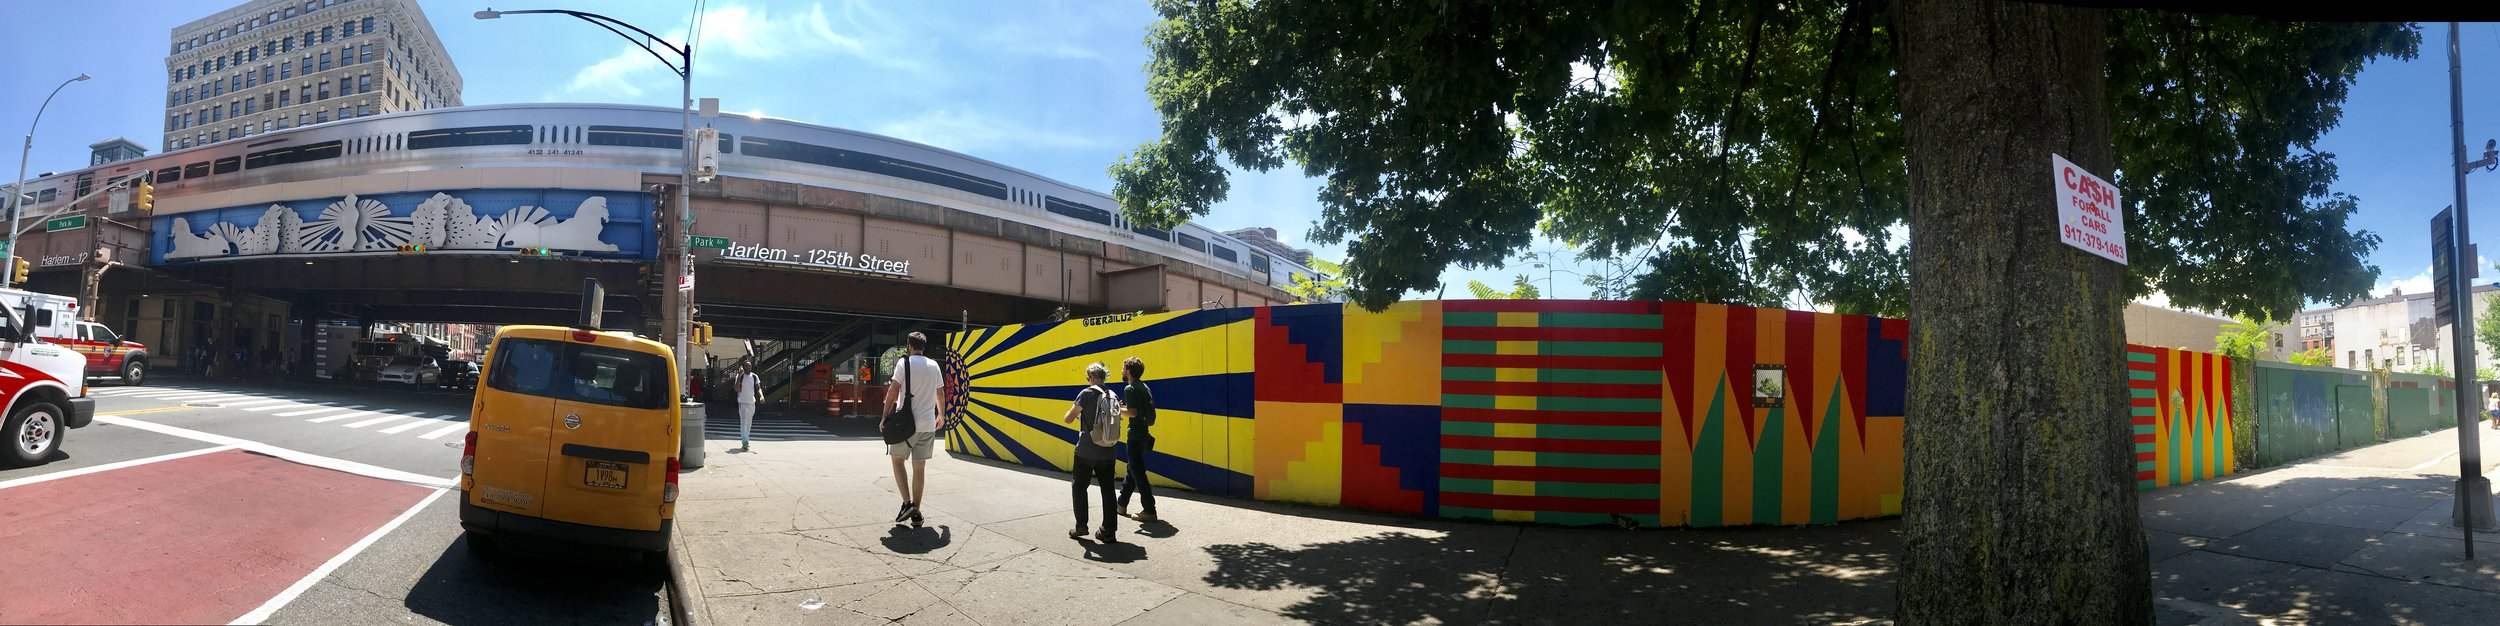 Thanks to artist Gera Lozano and crew for kicking us off with 164 feet of Uptown Sunshine Fabric on the southwest corner of 125th Street & Park Avenue. Click the photo for process pics from GothamToGo from the day of installation.